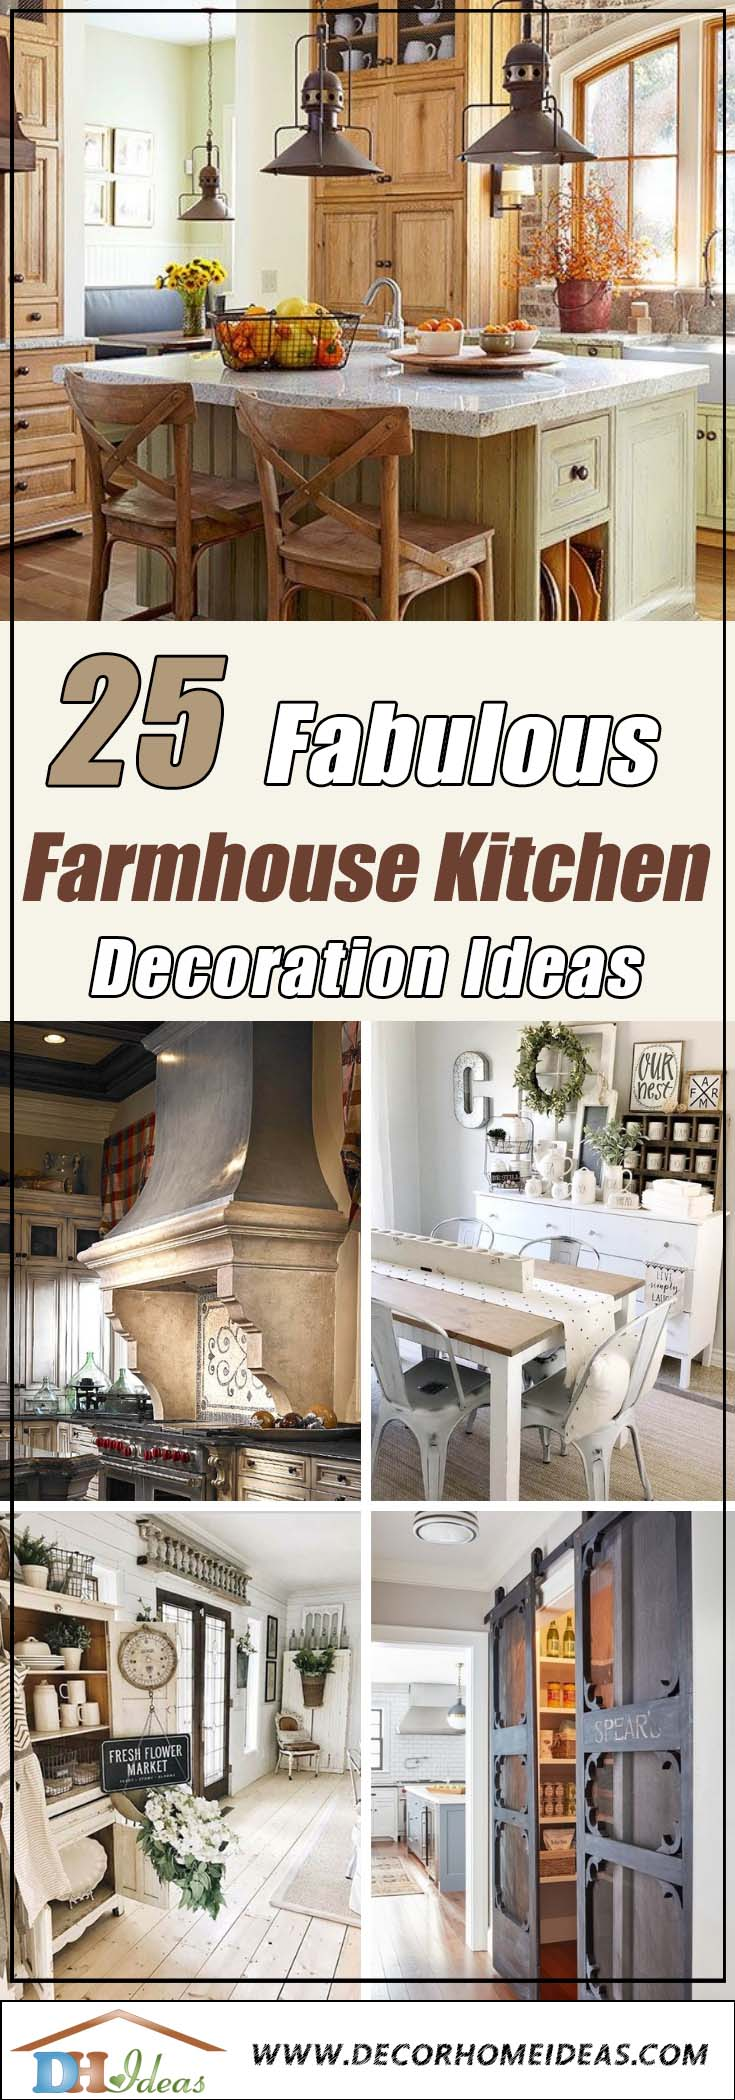 25 Farmhouse Kitchen Decor and Design #farmhousekitchen #farmhouse #farmhousedecor #kitchen #homedecor #decorhomeideas